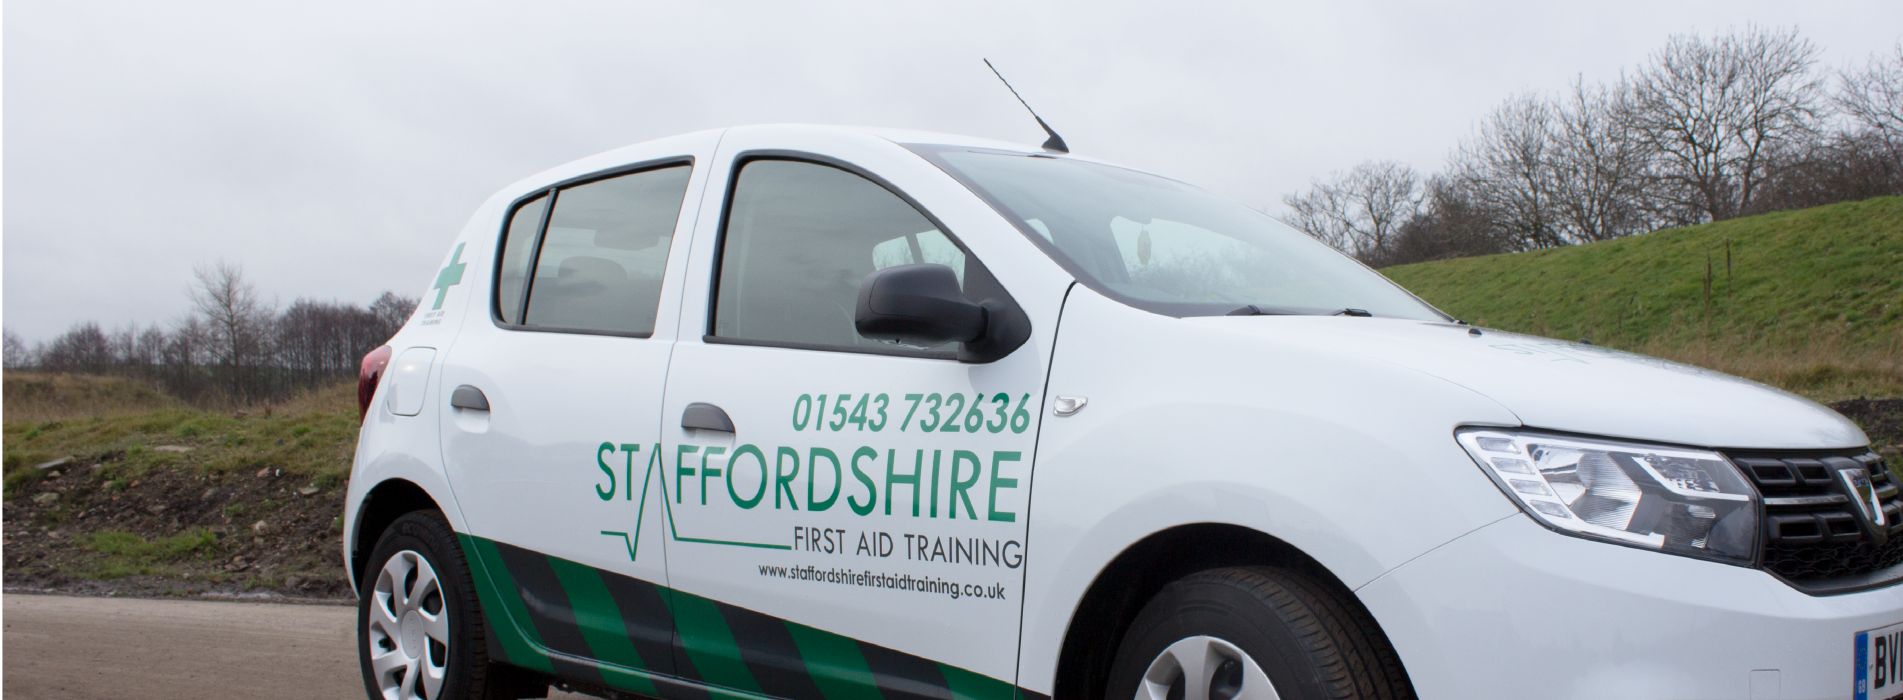 atherstone first aid training